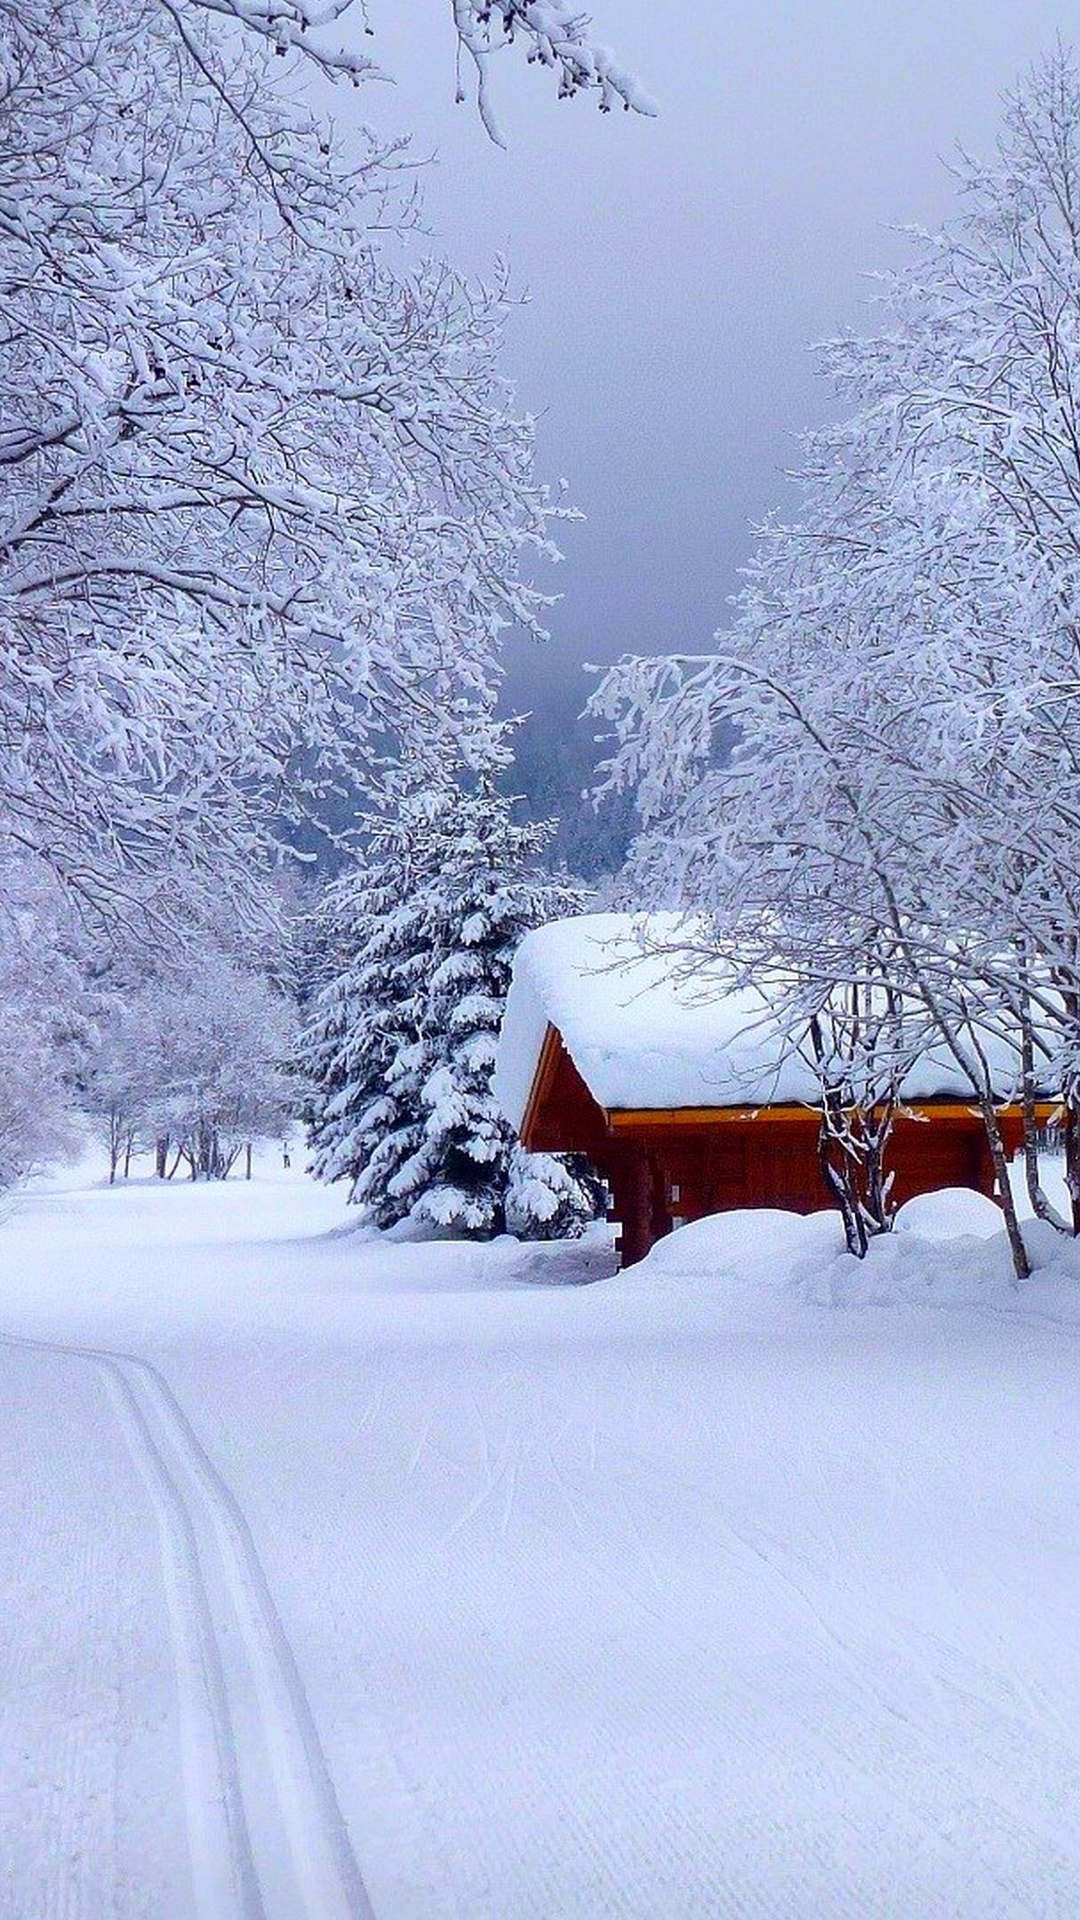 Snow Road House 4K Ultra HD wallpaper 4k WallpaperNet 1080x1920